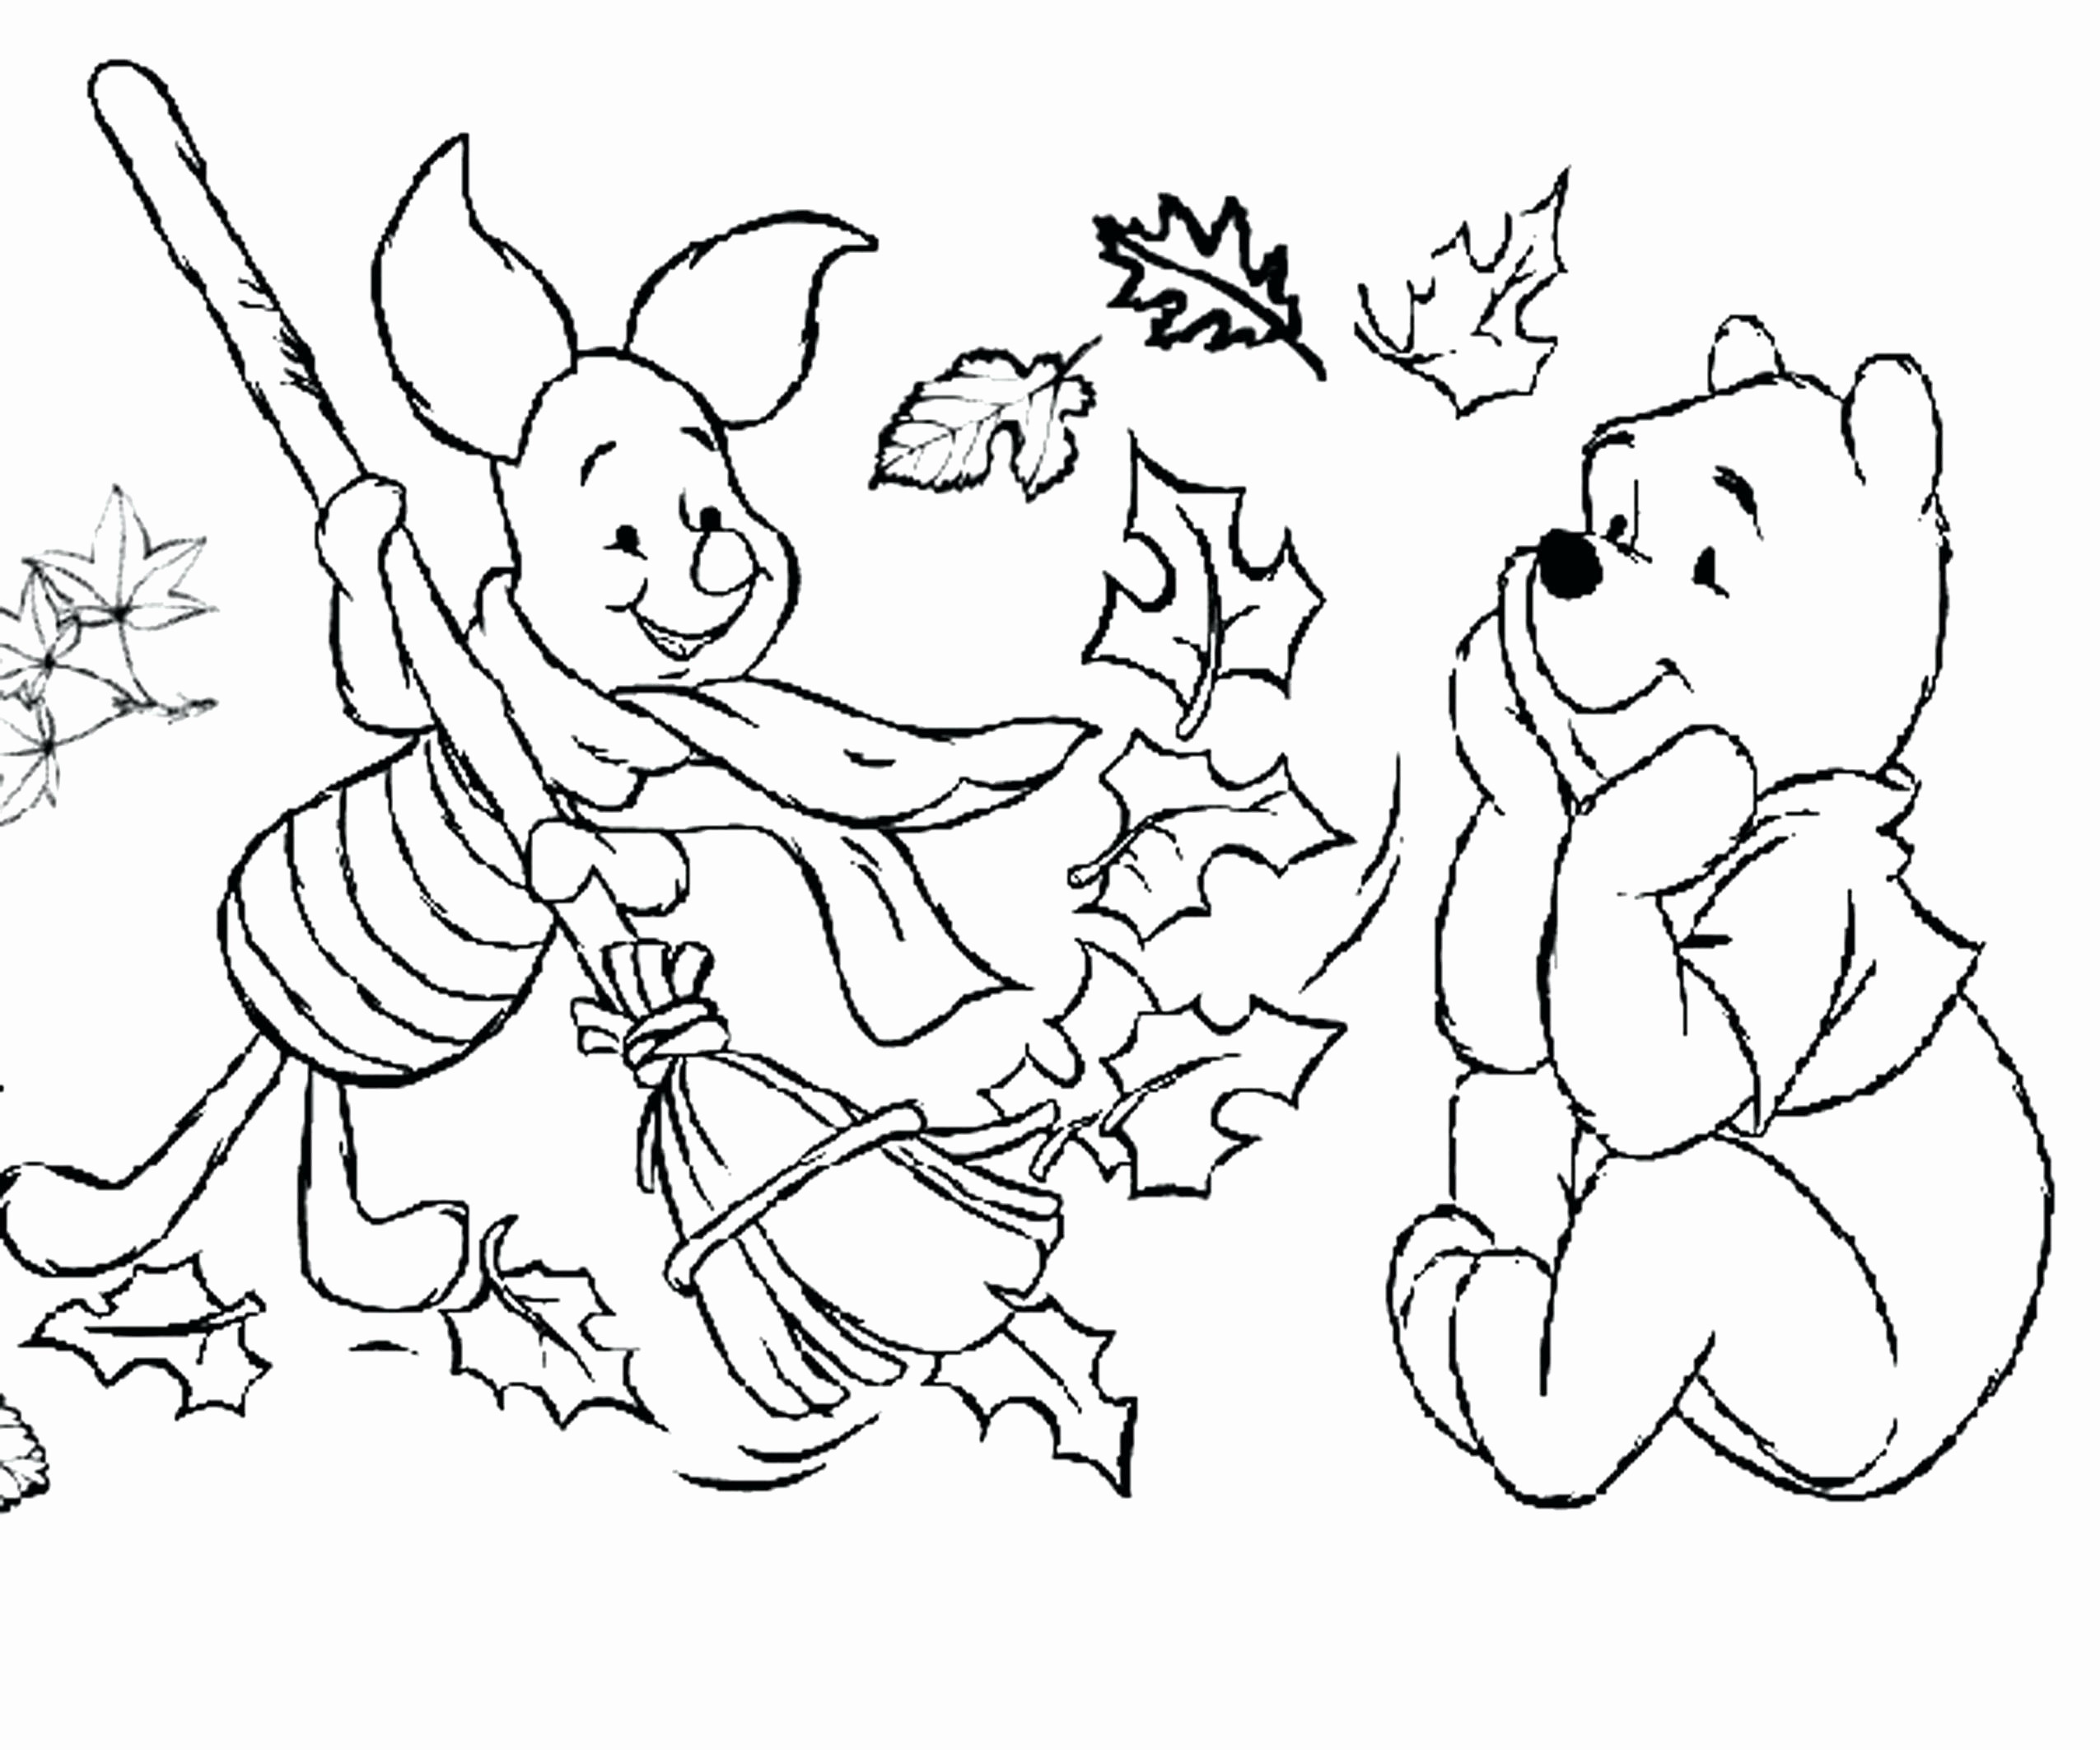 Hospital Coloring Pages Printables - Hospital Coloring Pages Printables Halloween Coloring Pages